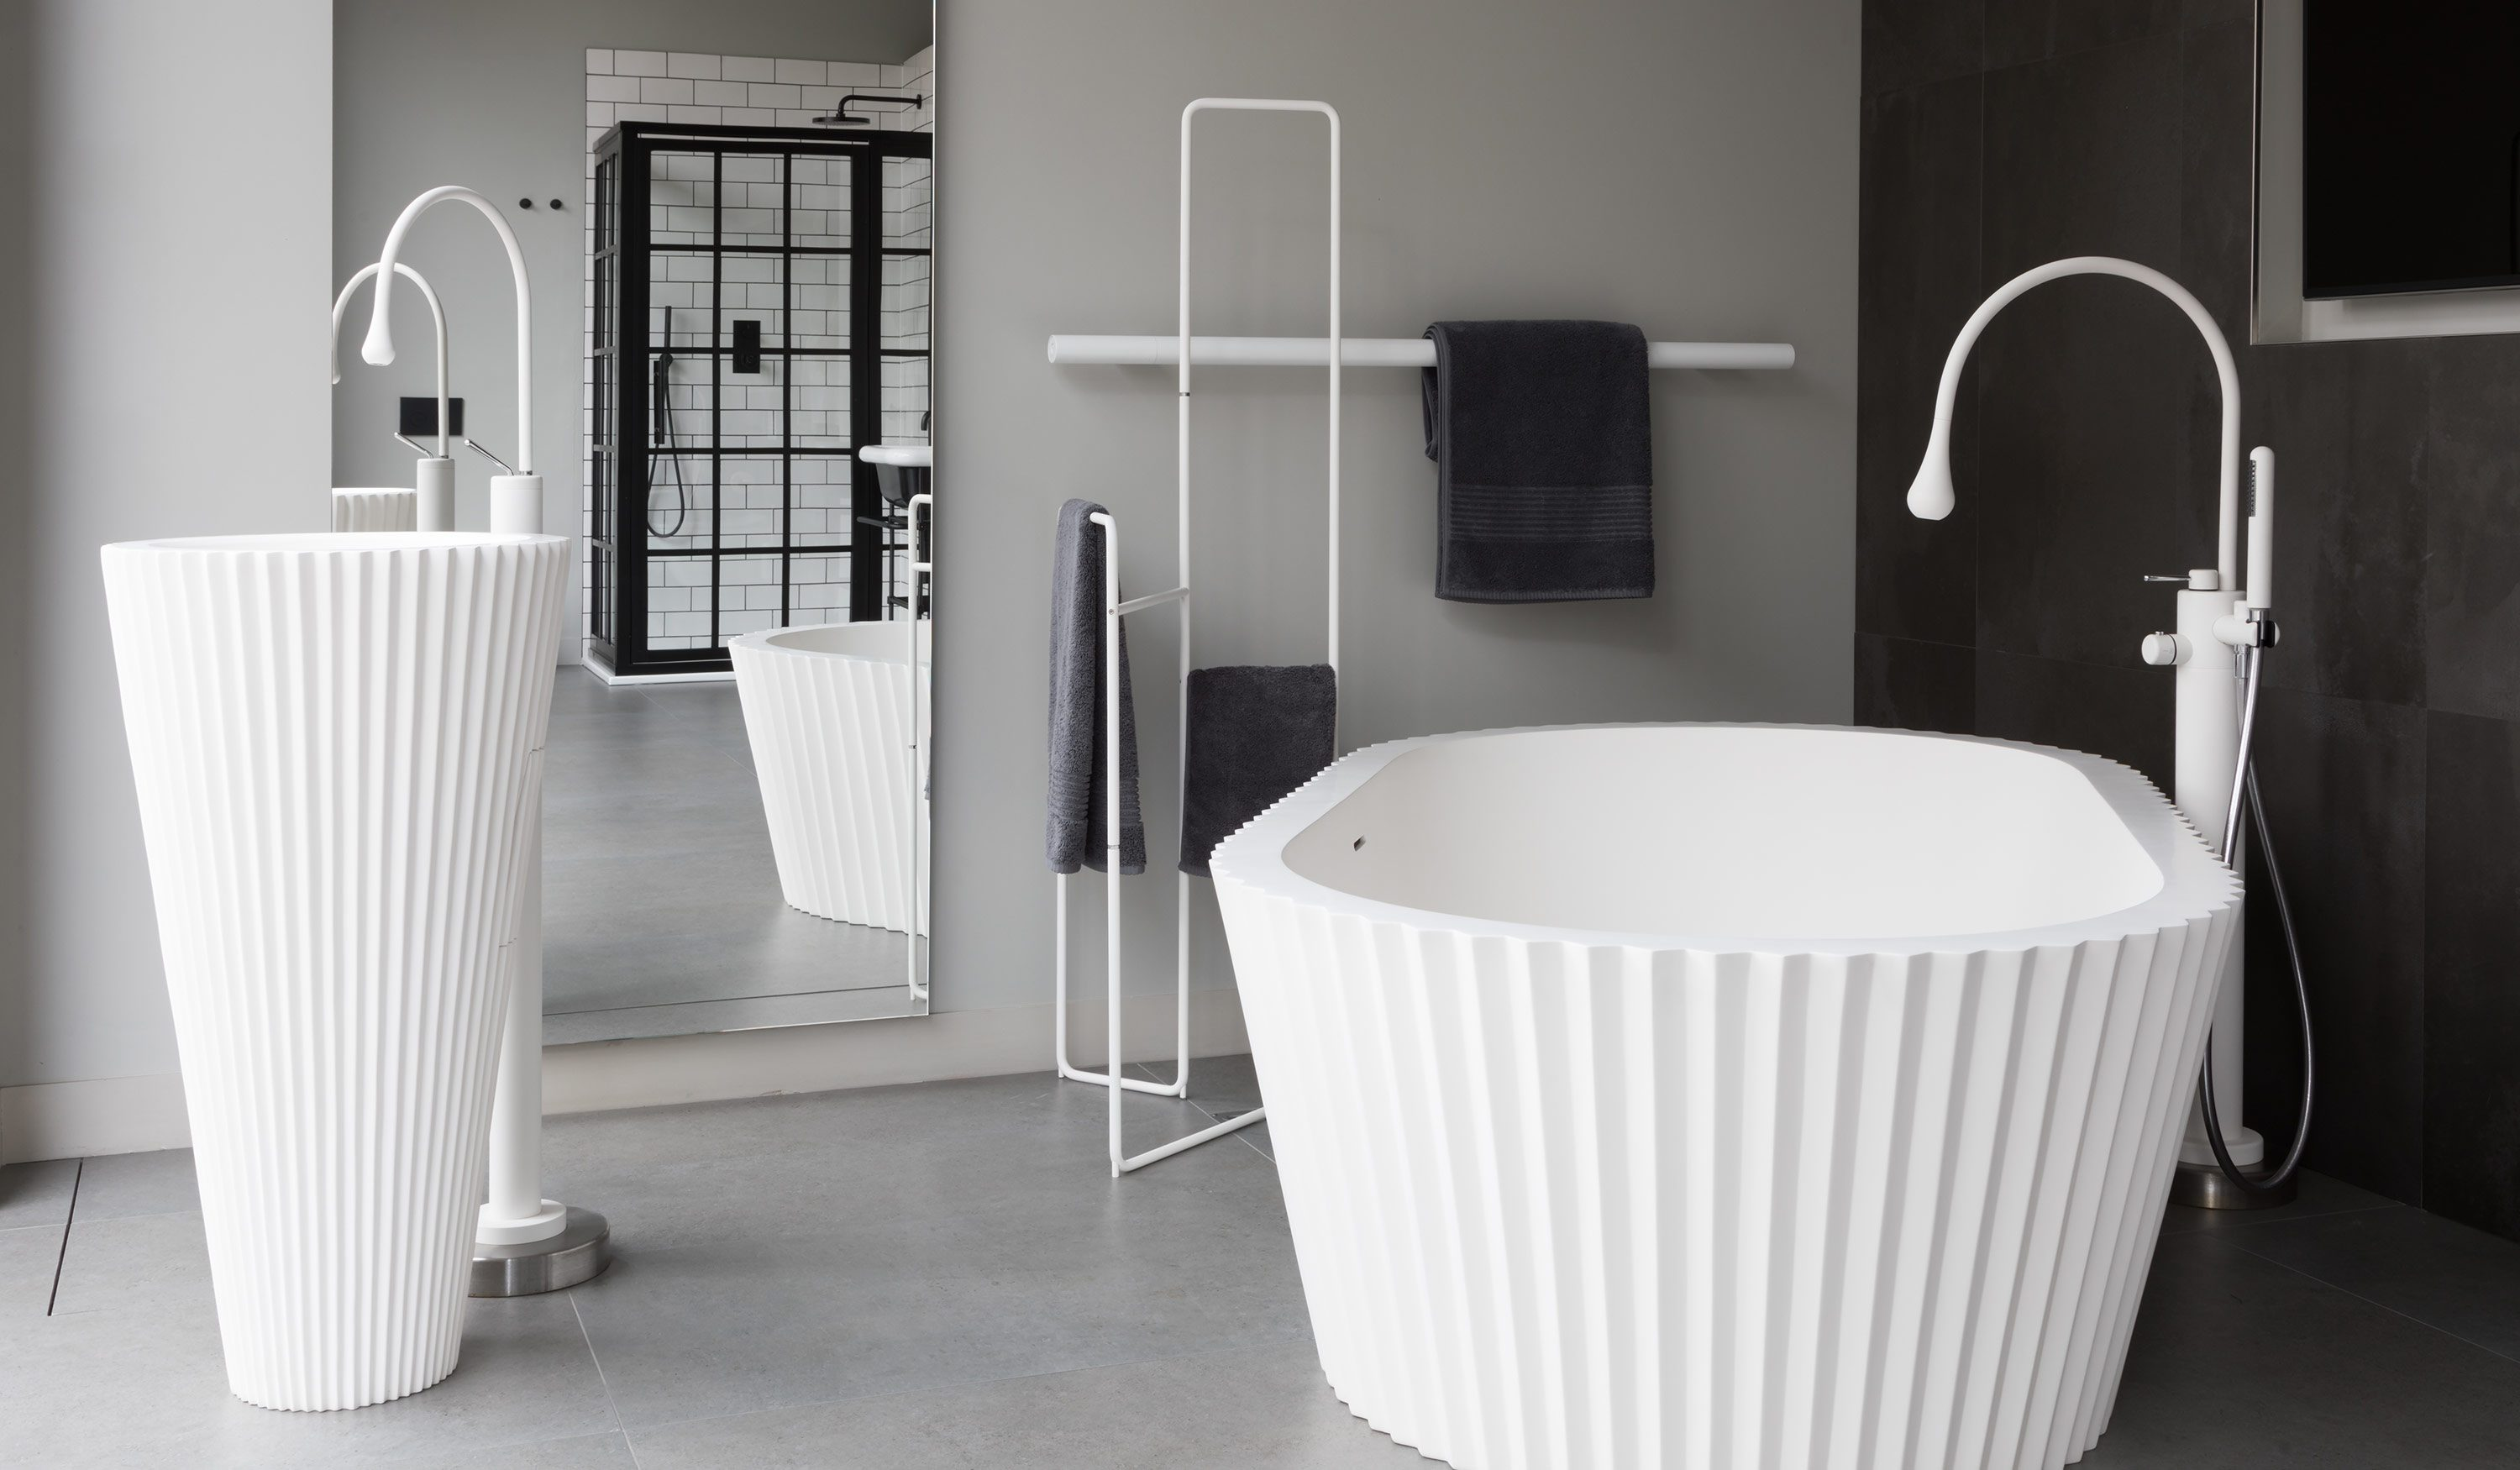 West One Bathrooms Notting Hill Showroom Westbourne Park Road 7